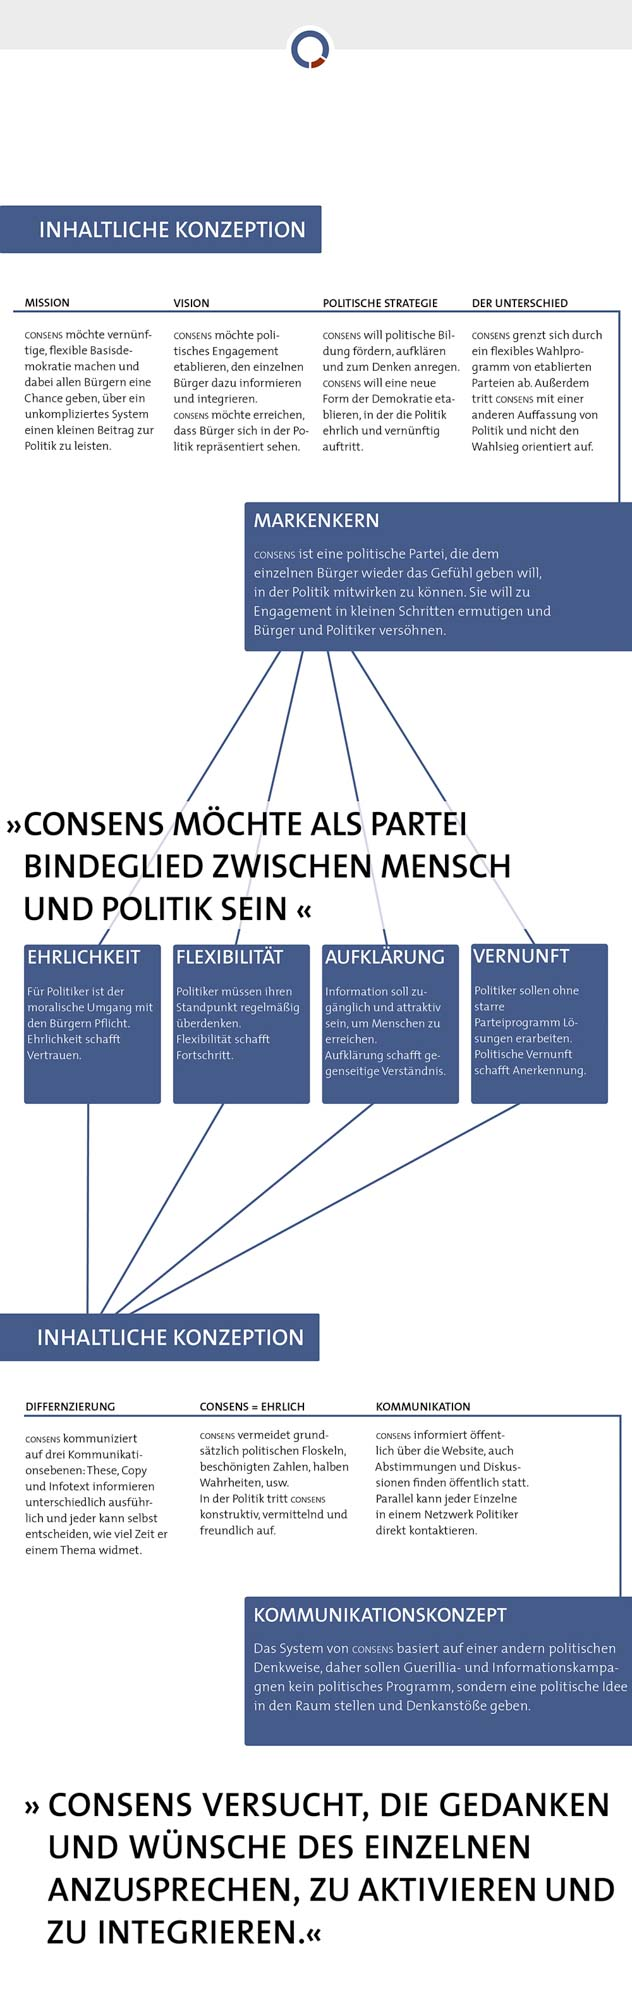 graphic showing the conceptual system behind the consens party